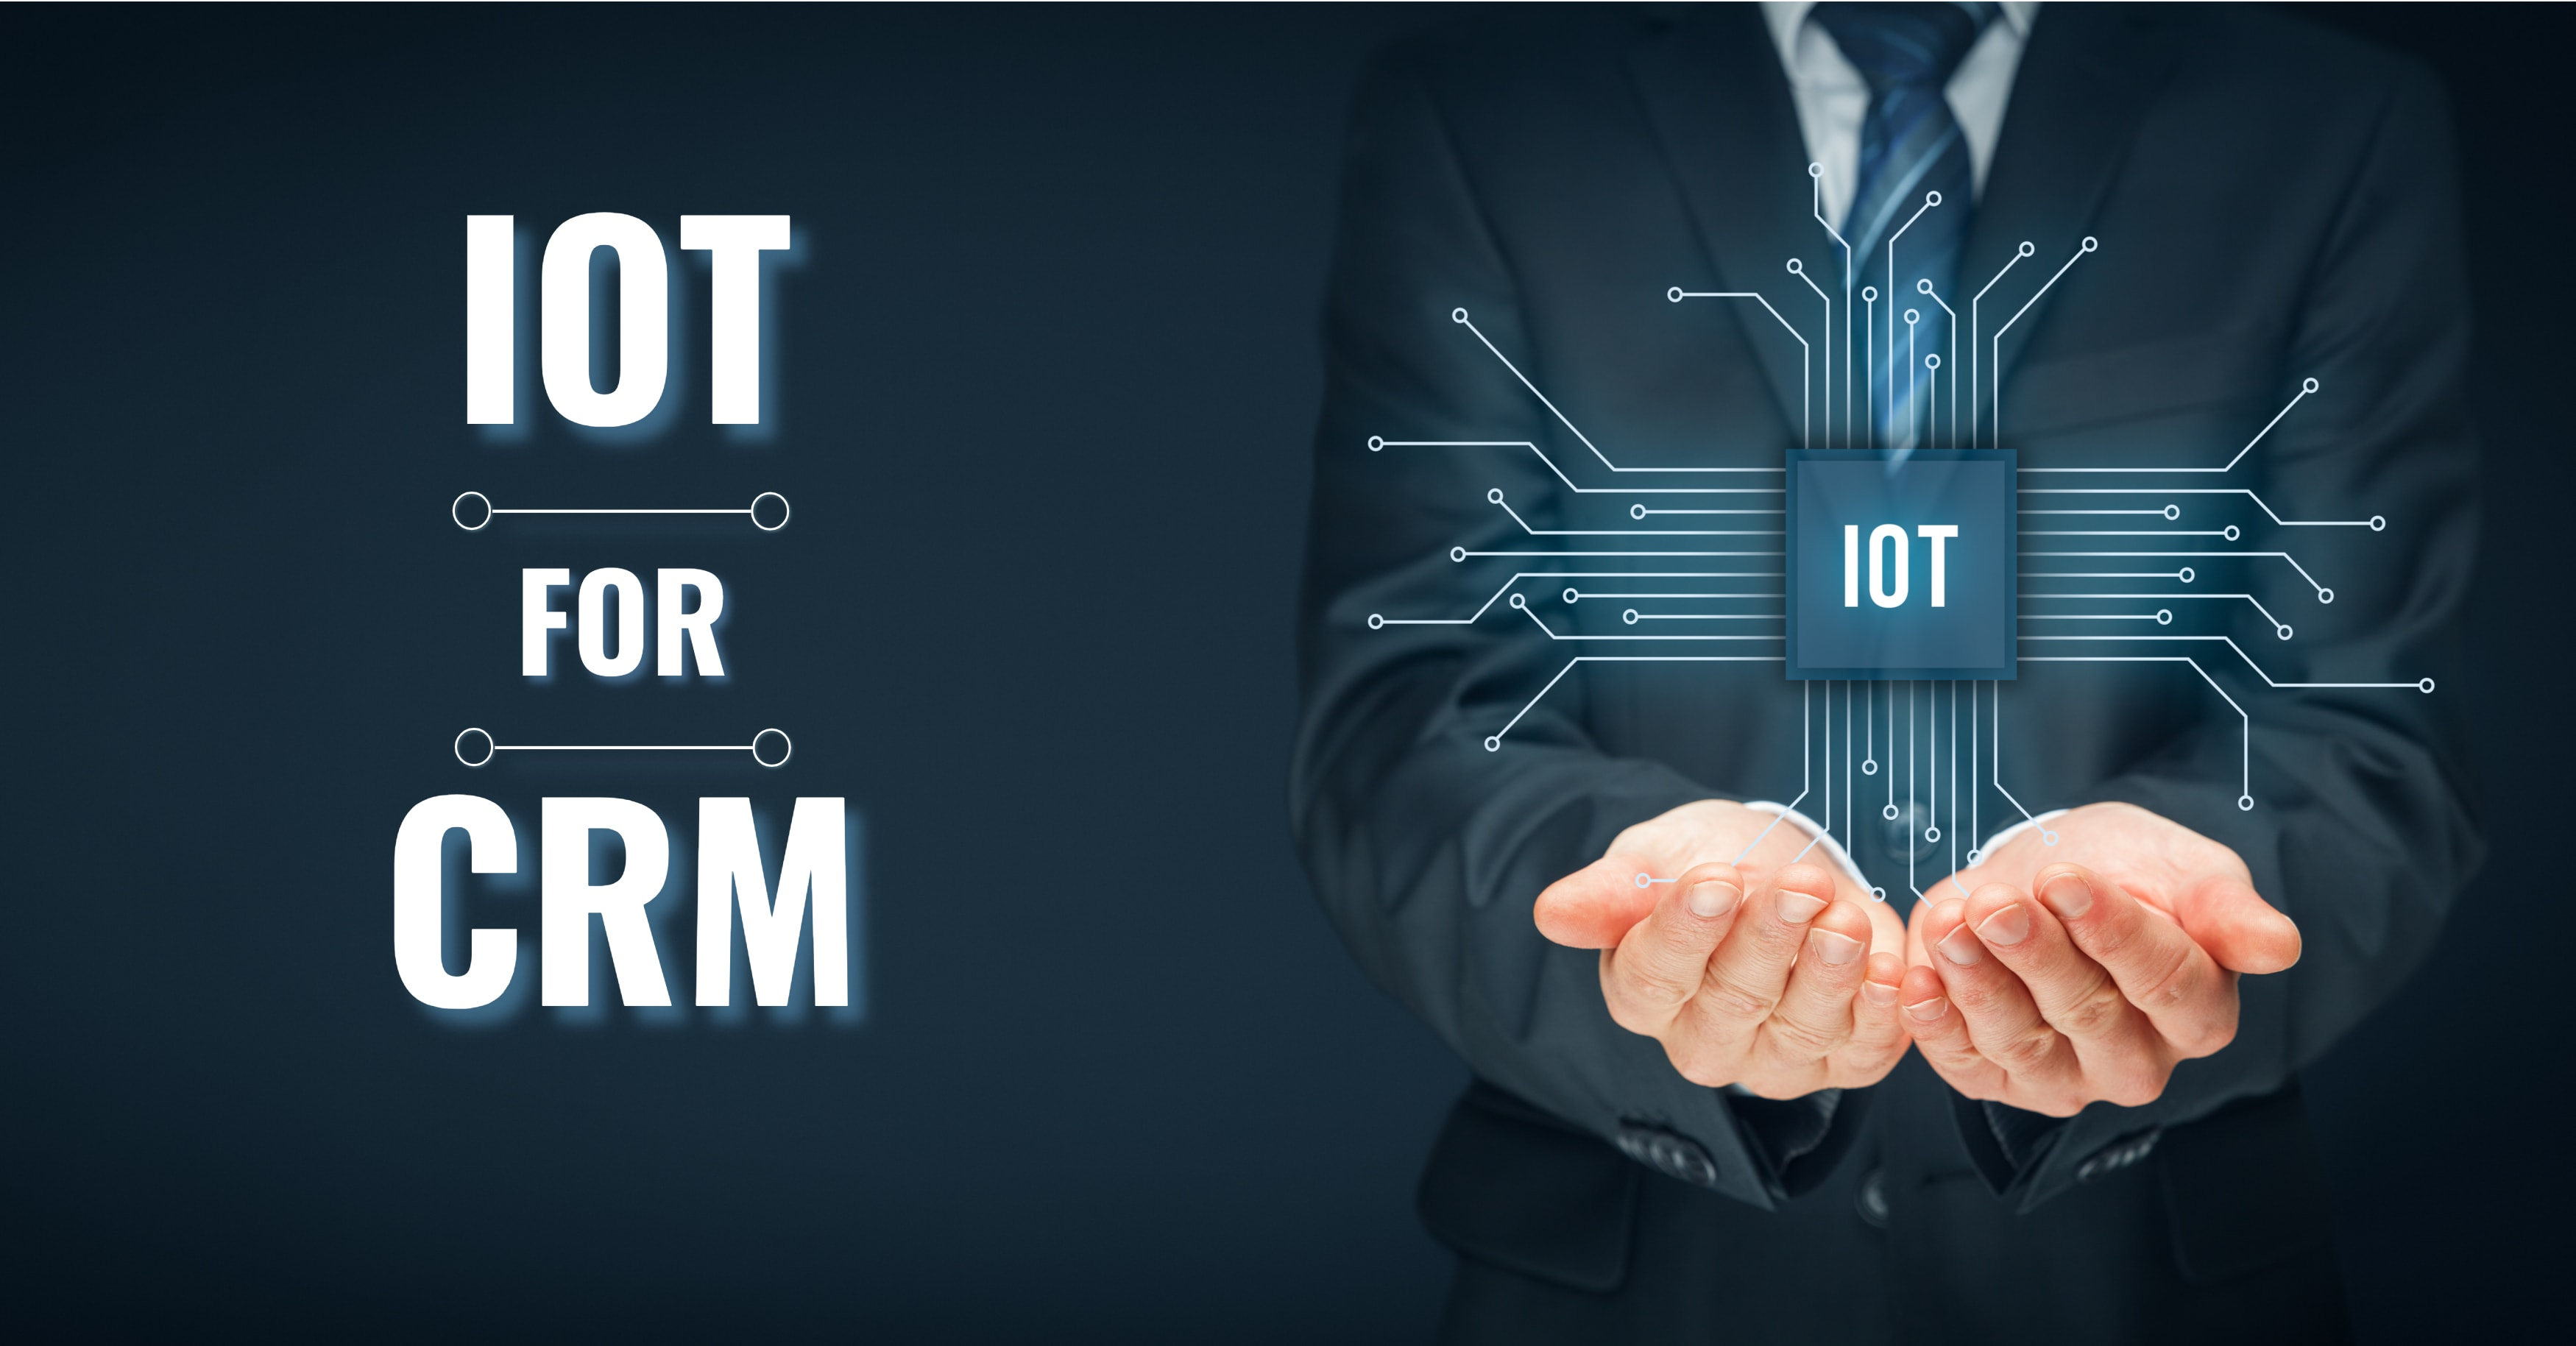 How is IoT Transforming CRM?